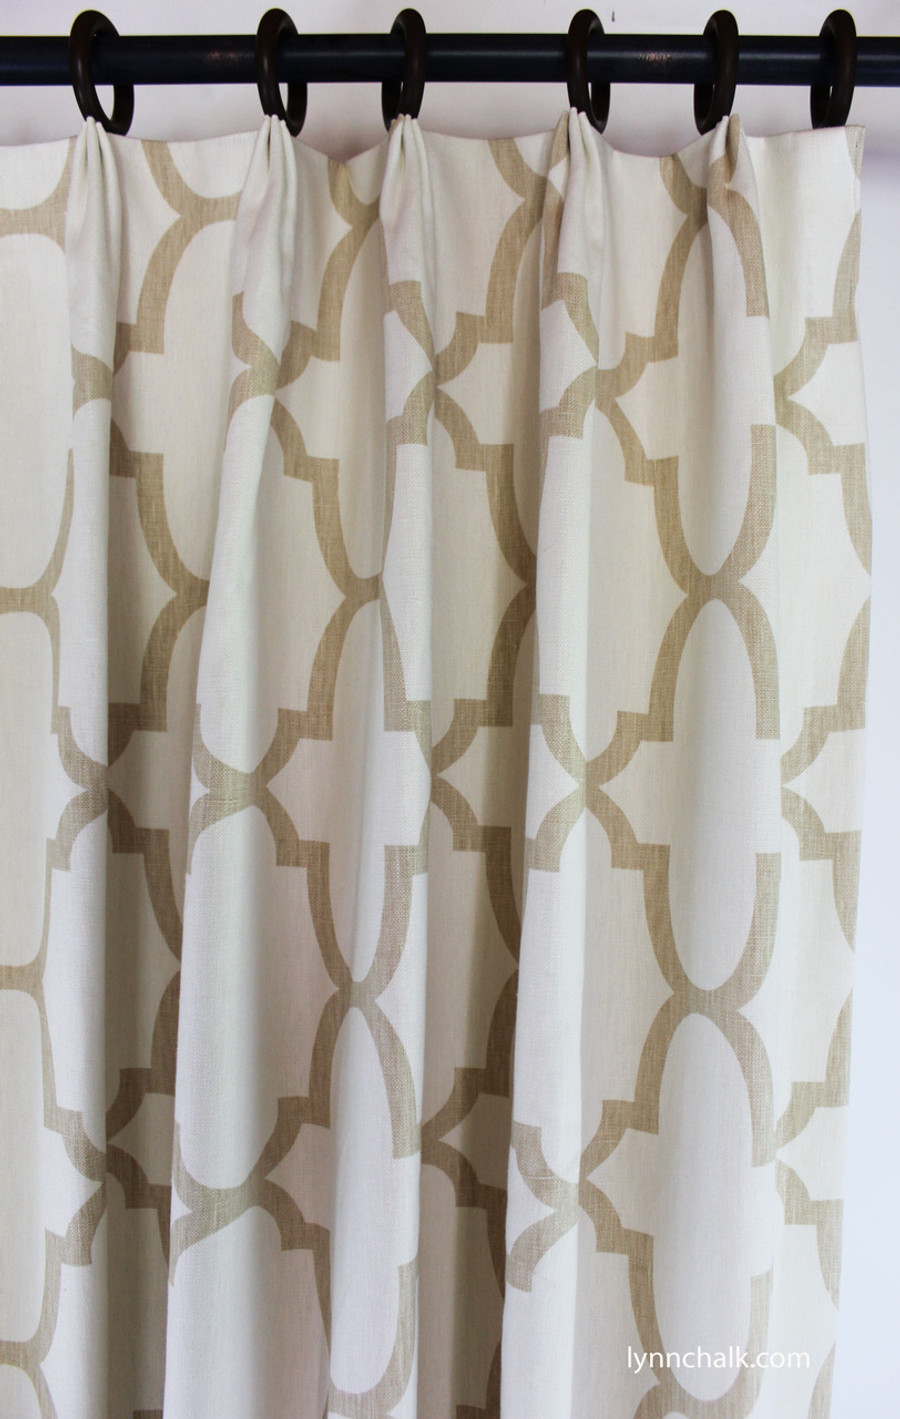 Custom Fan Pleated Drapes by Lynn Chalk in Windsor Smith Riad Beige/Ivory